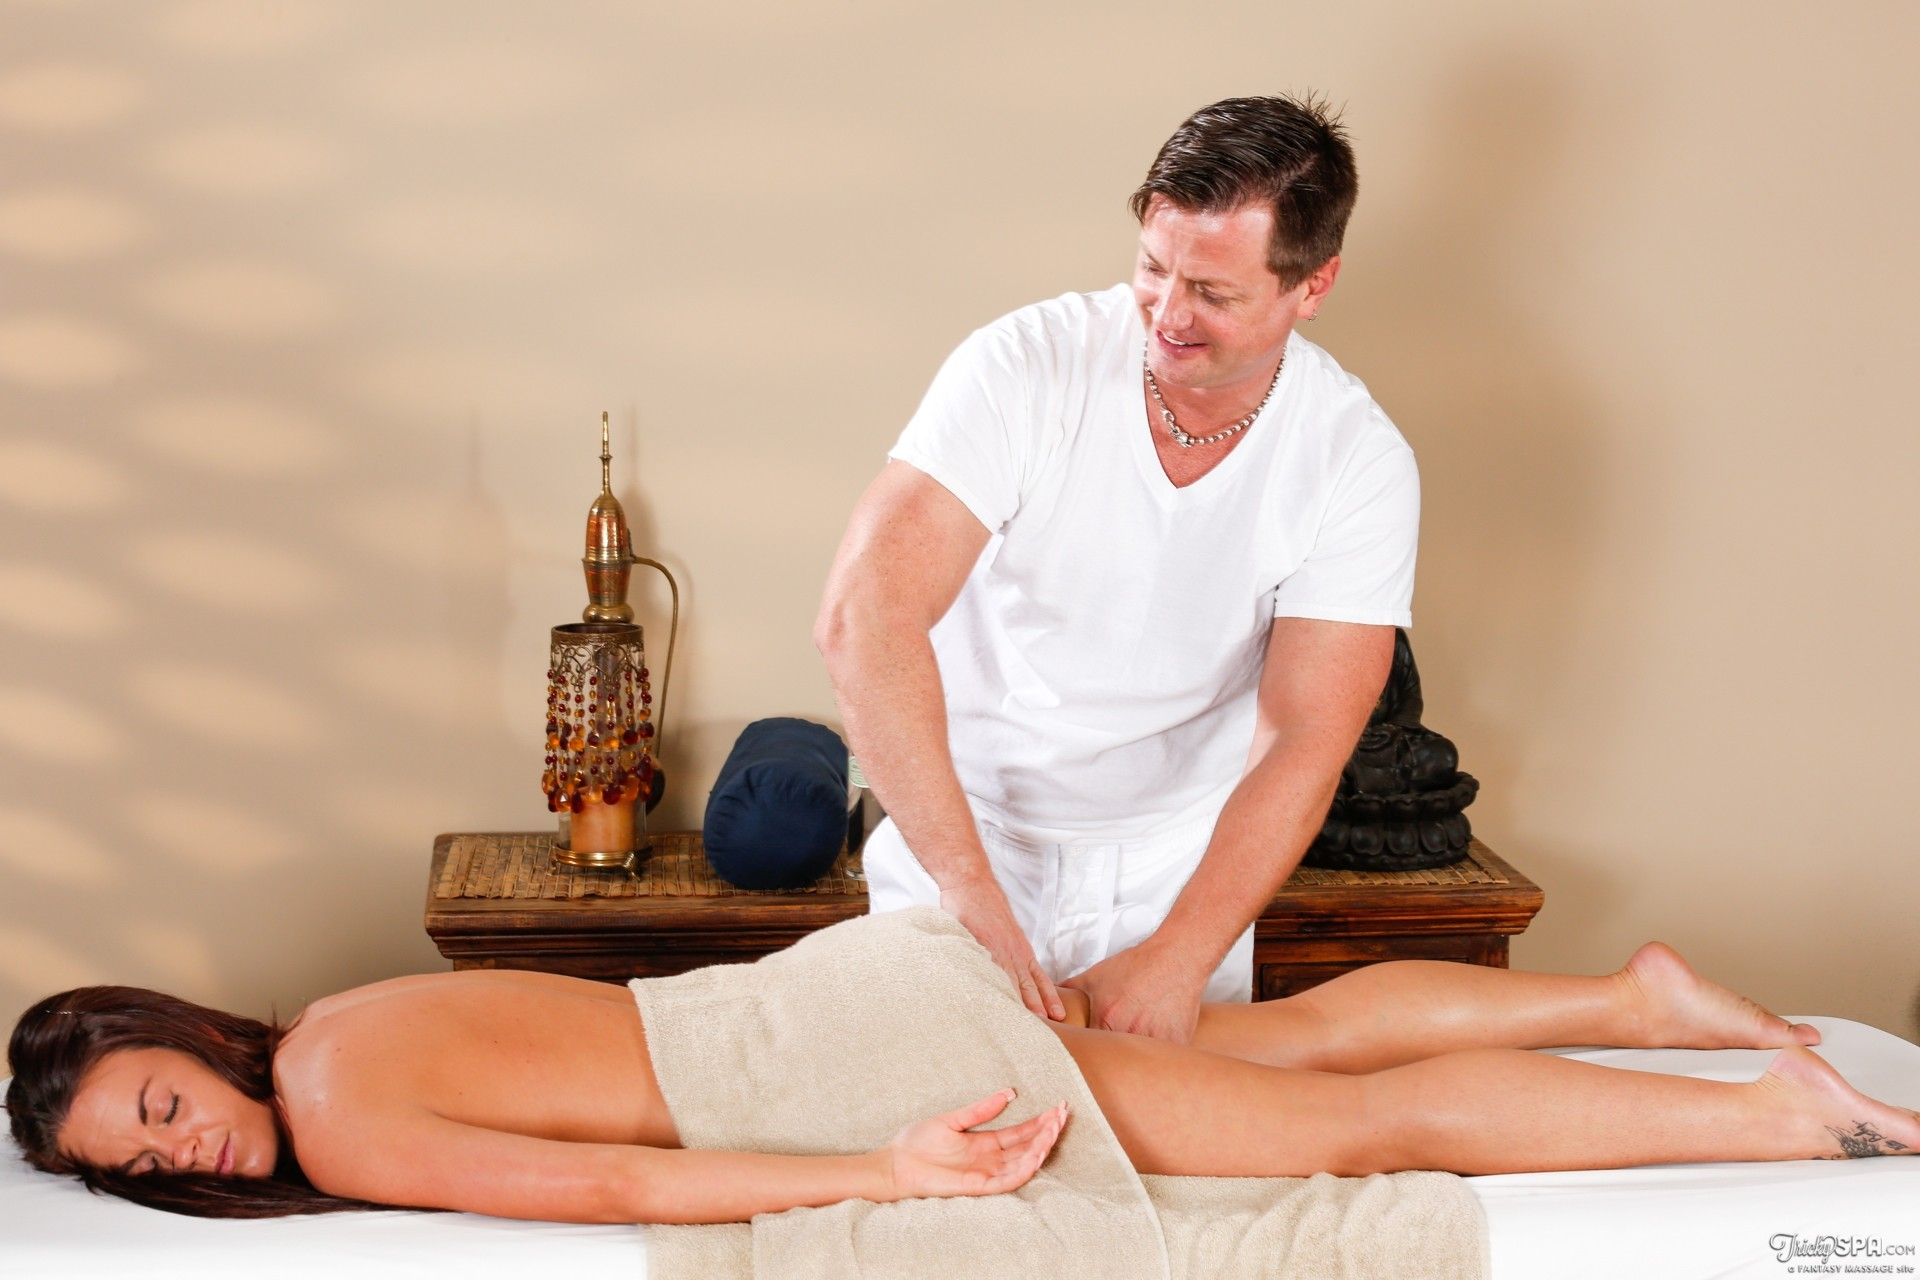 Erotic massage ft. walton beach florida